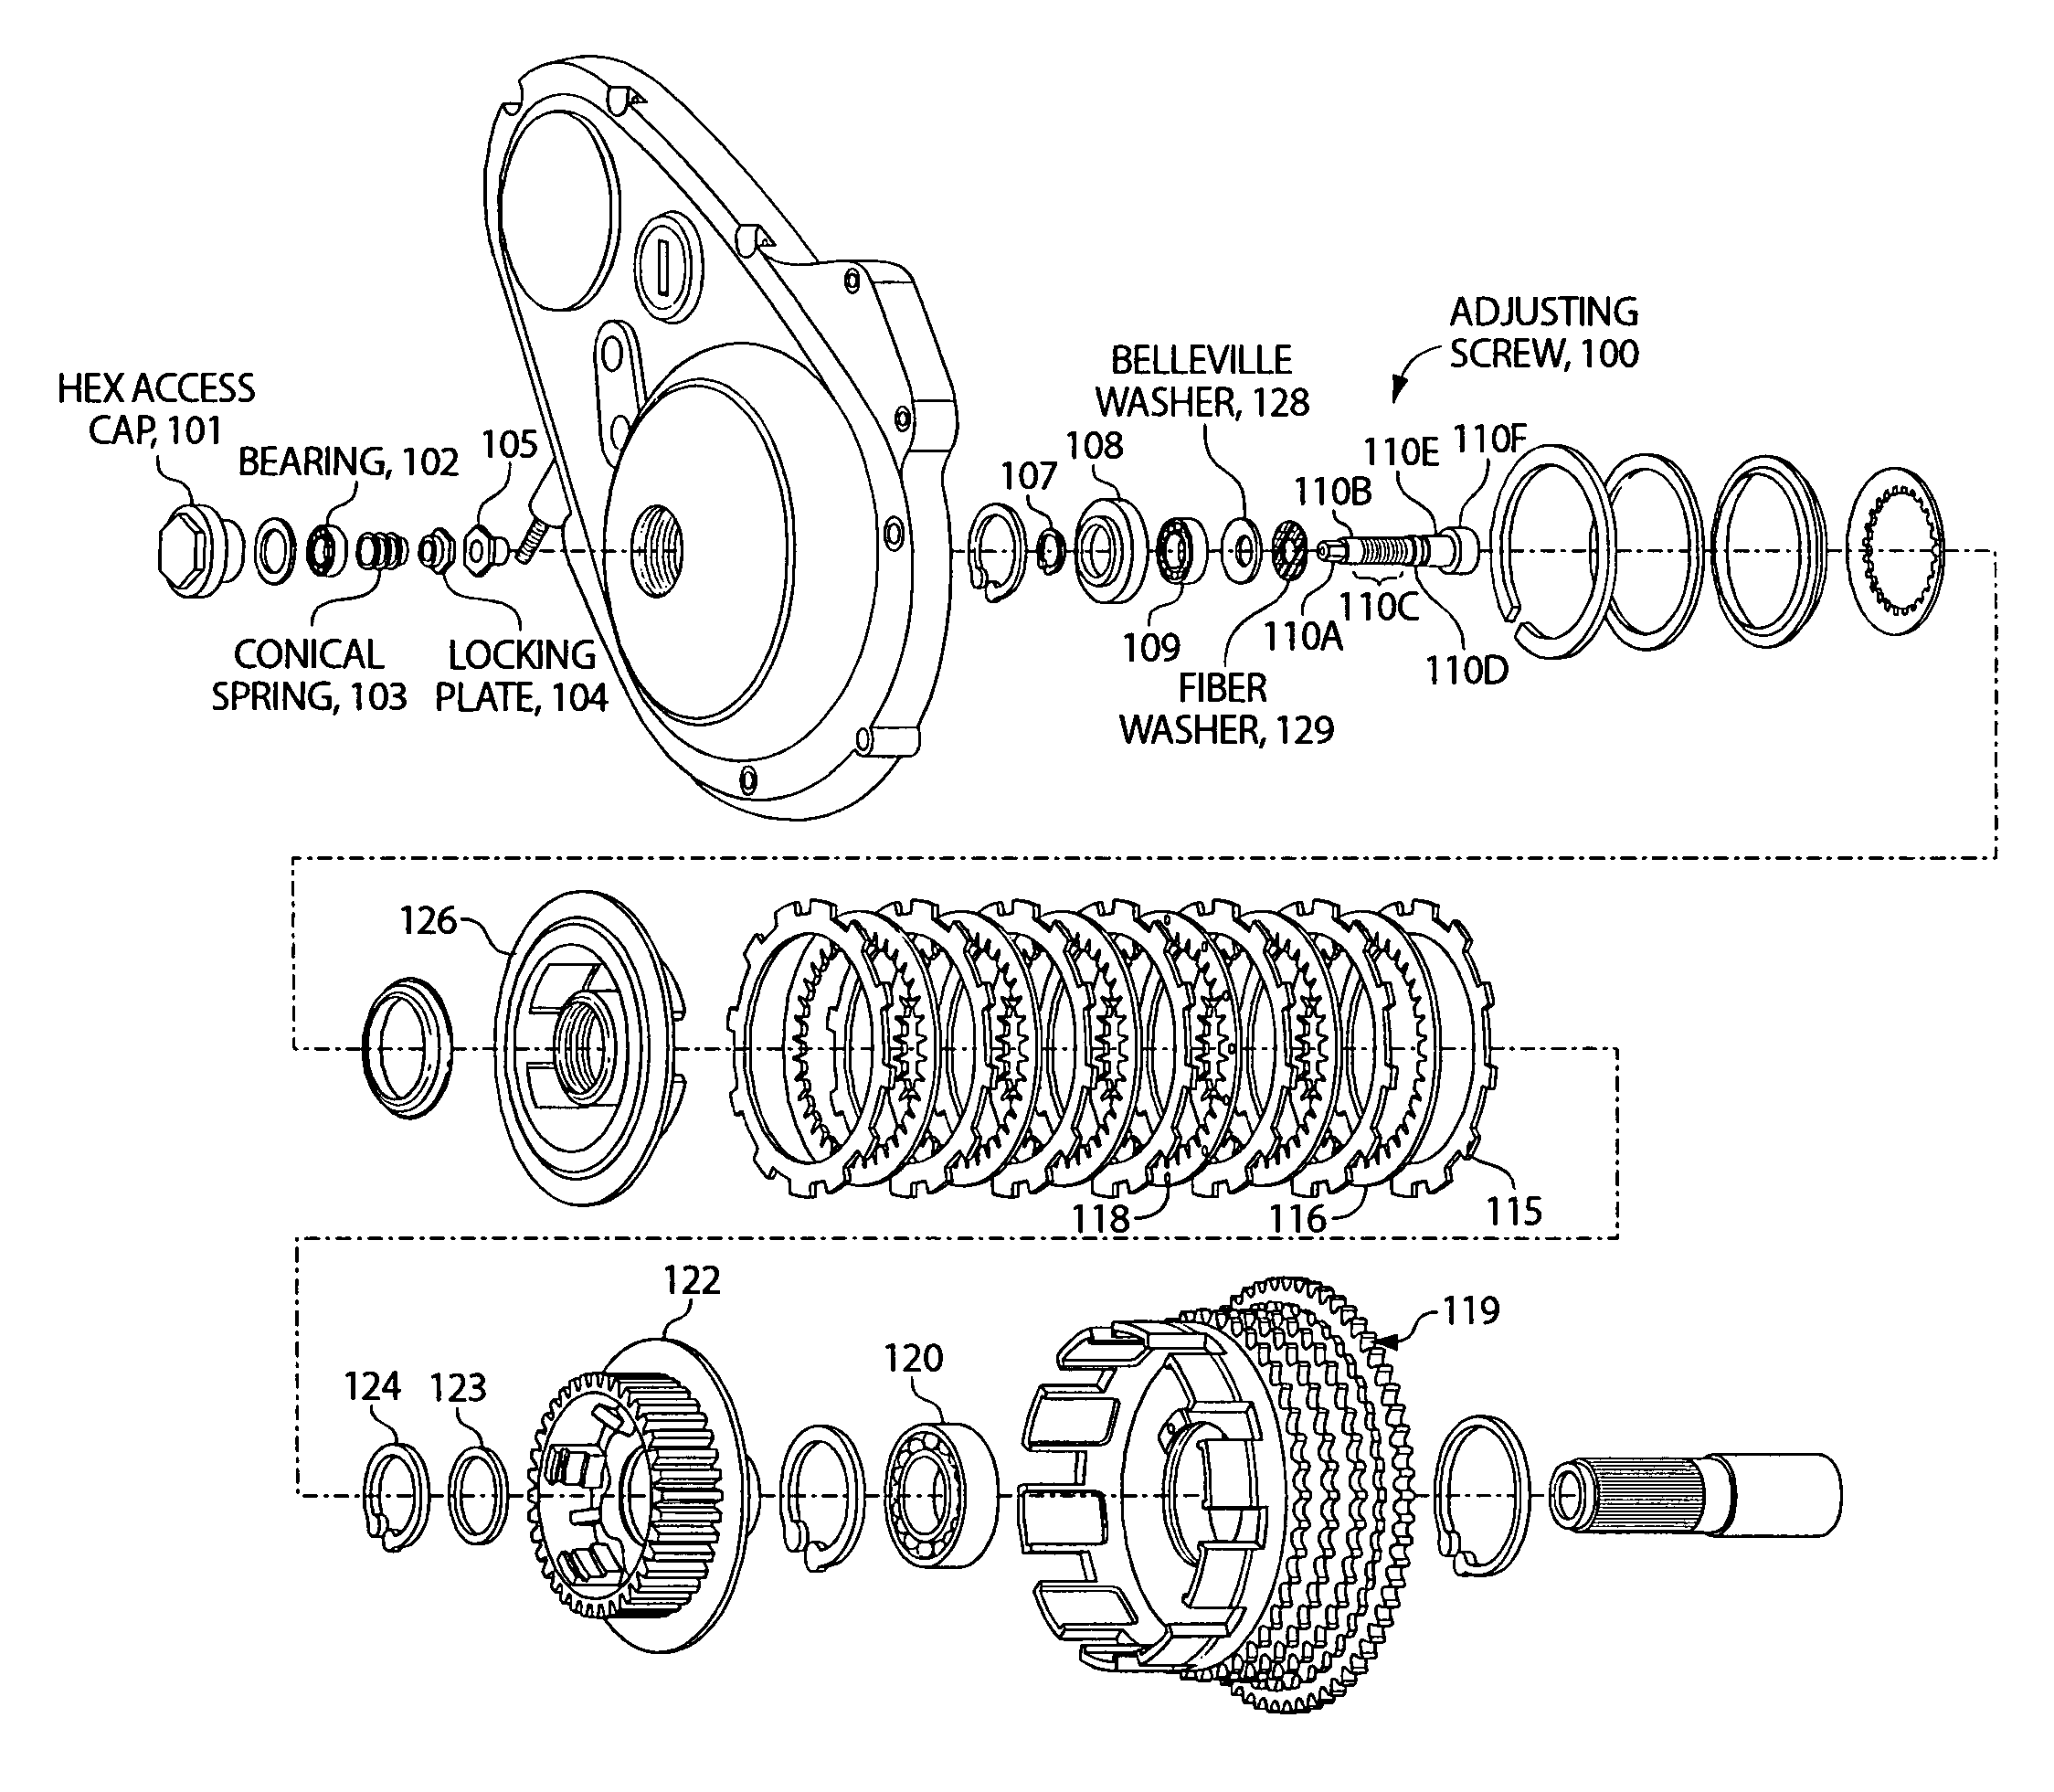 Harley Davidson Motorcycles Clutch Parts Diagram. Diagram